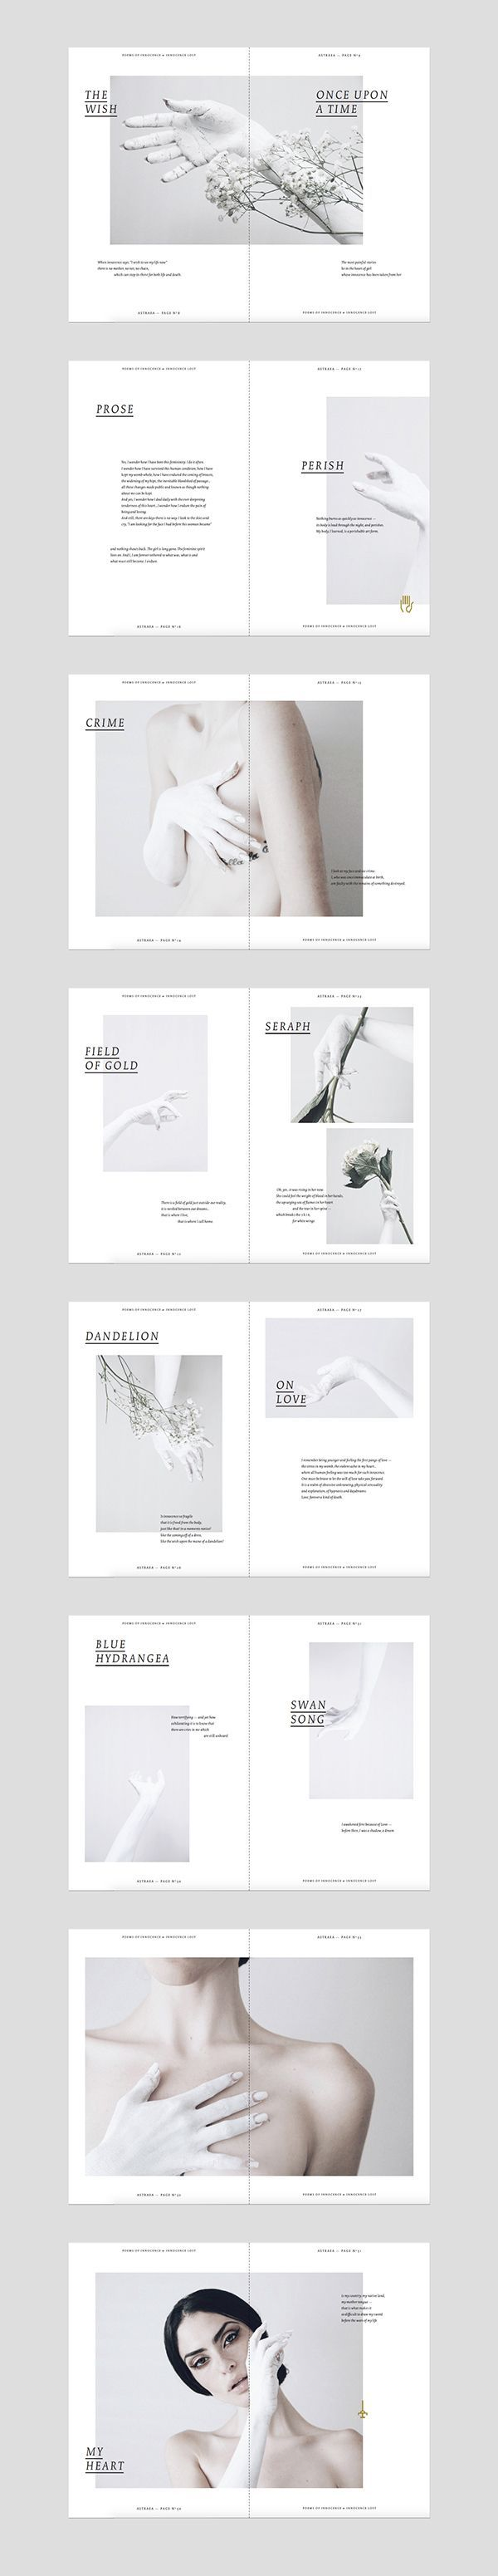 ASTRAEA on Editorial Design Served - LOVE LOVE LOVE THIS LAYOUT!!!